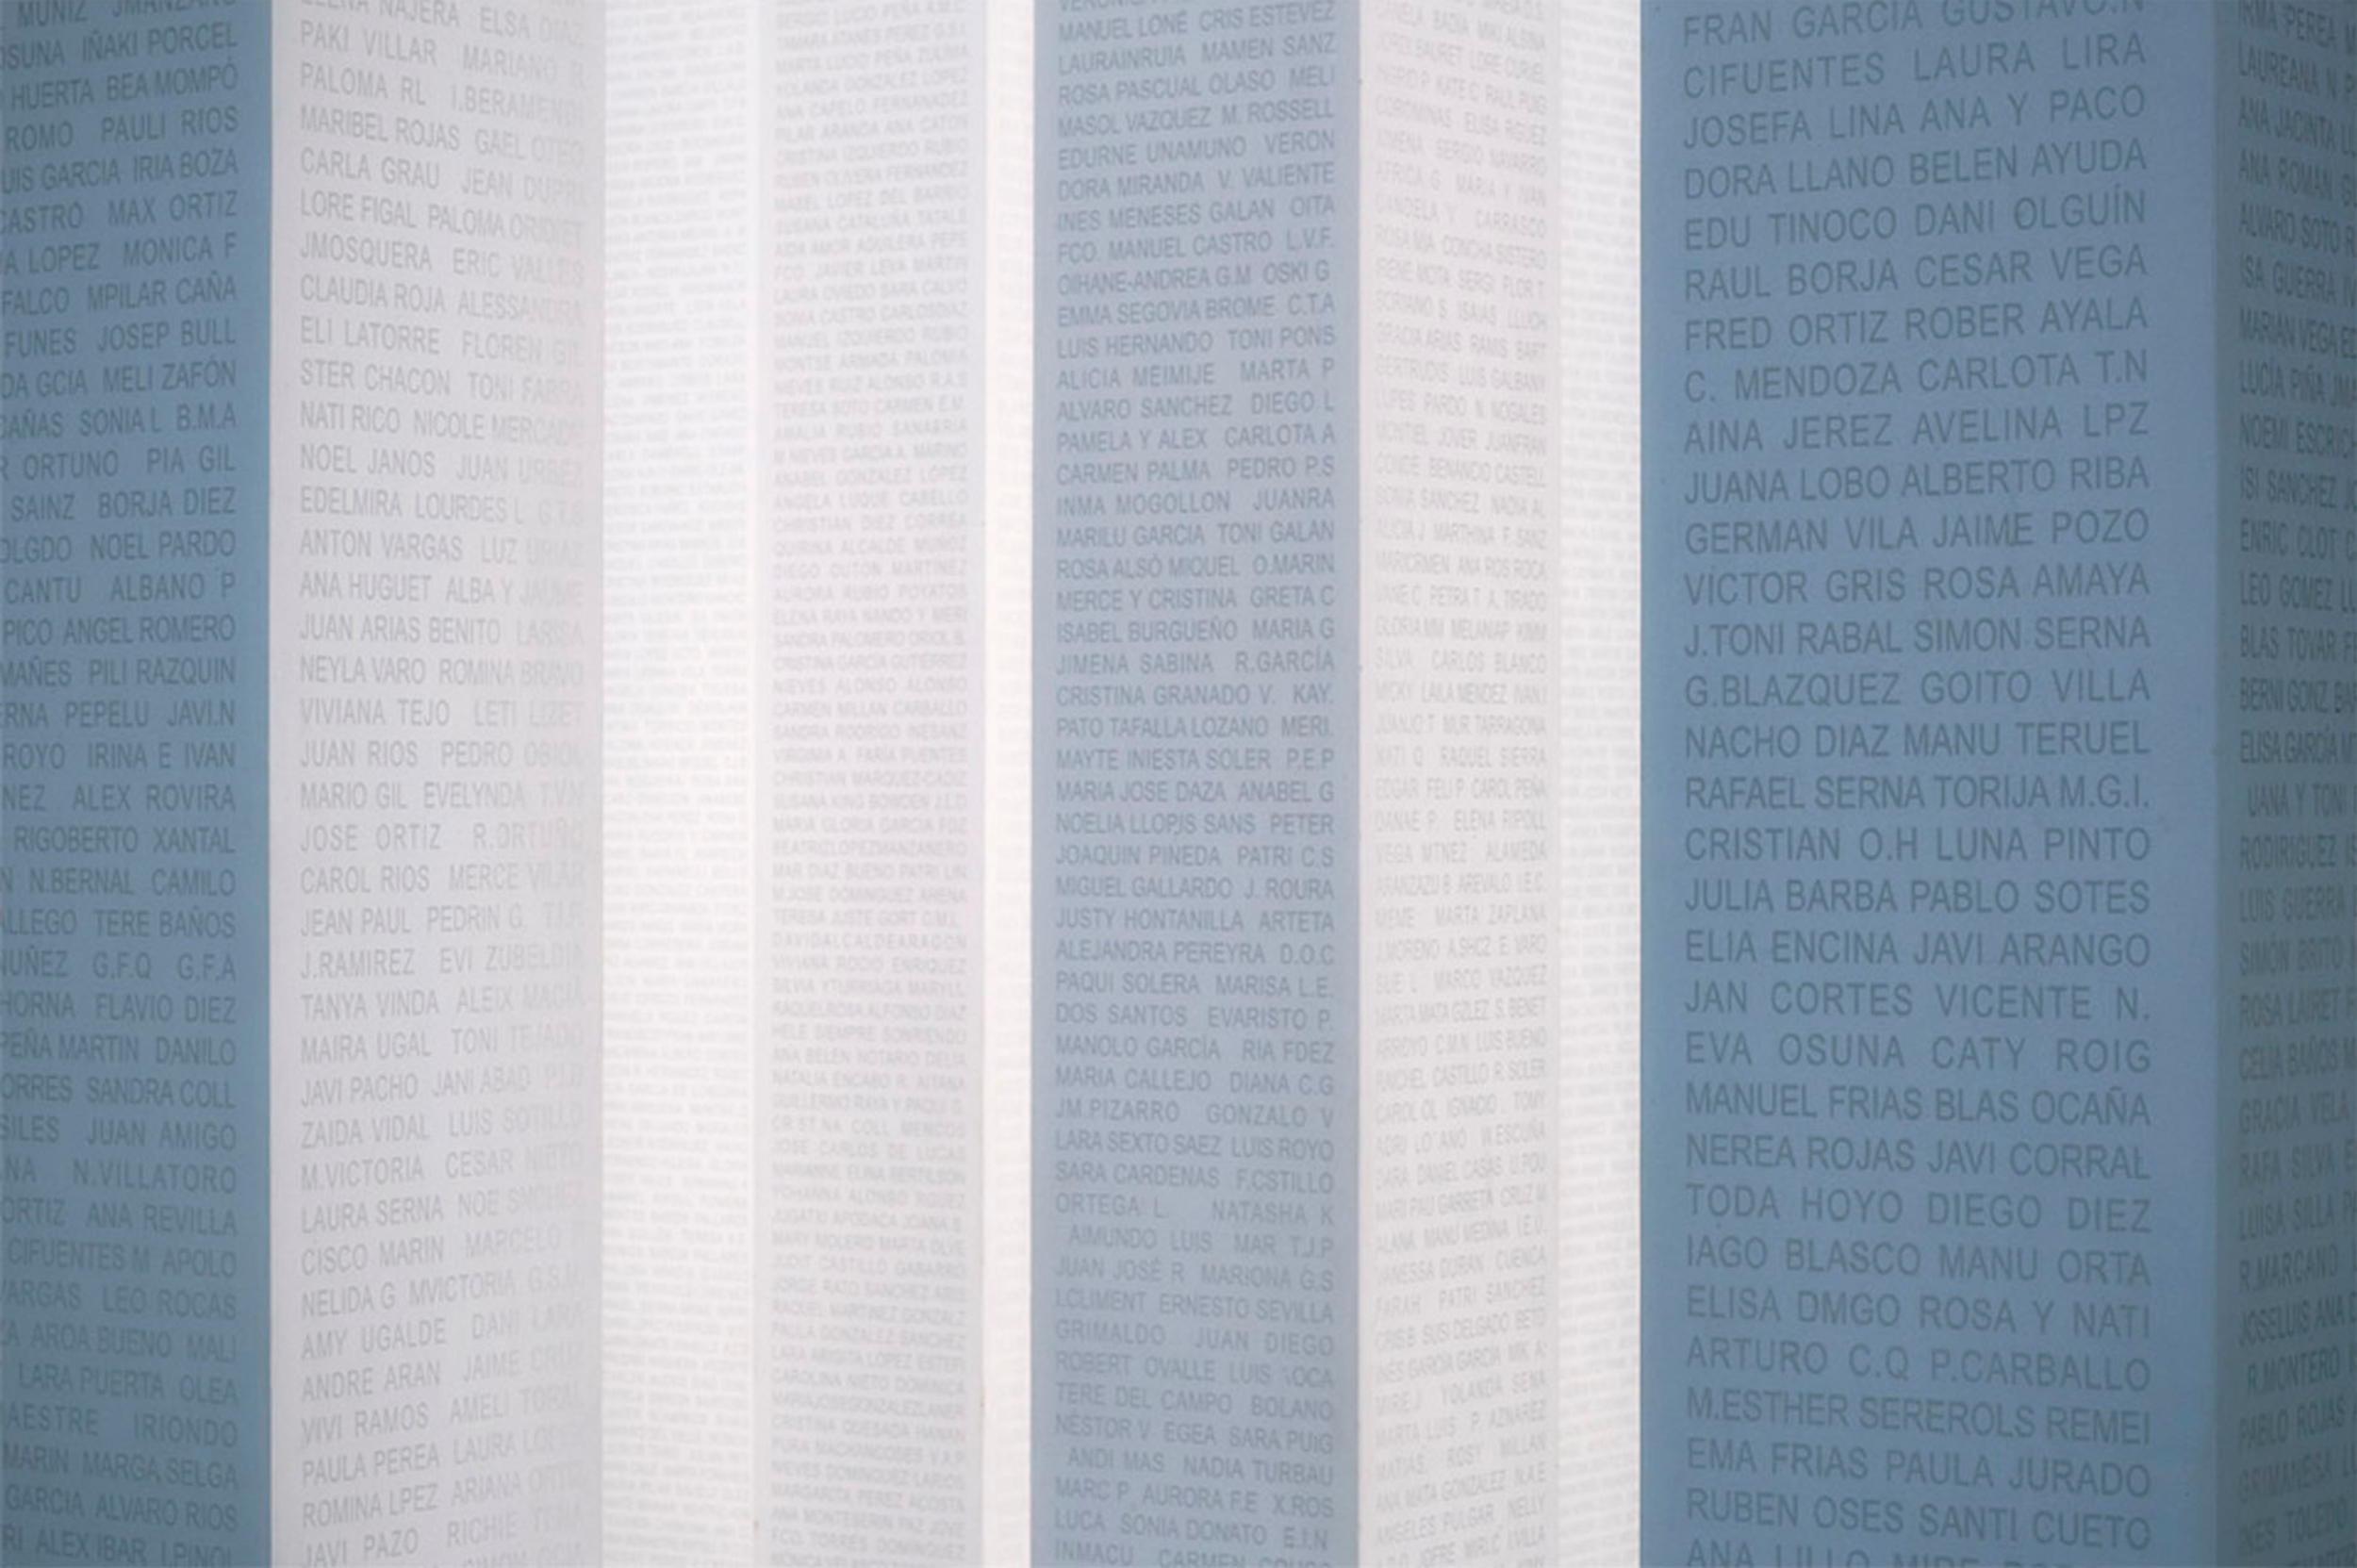 Fifty thousand people participated spreading the news about the vaccine. The name of each one of them got engraved in the monument.